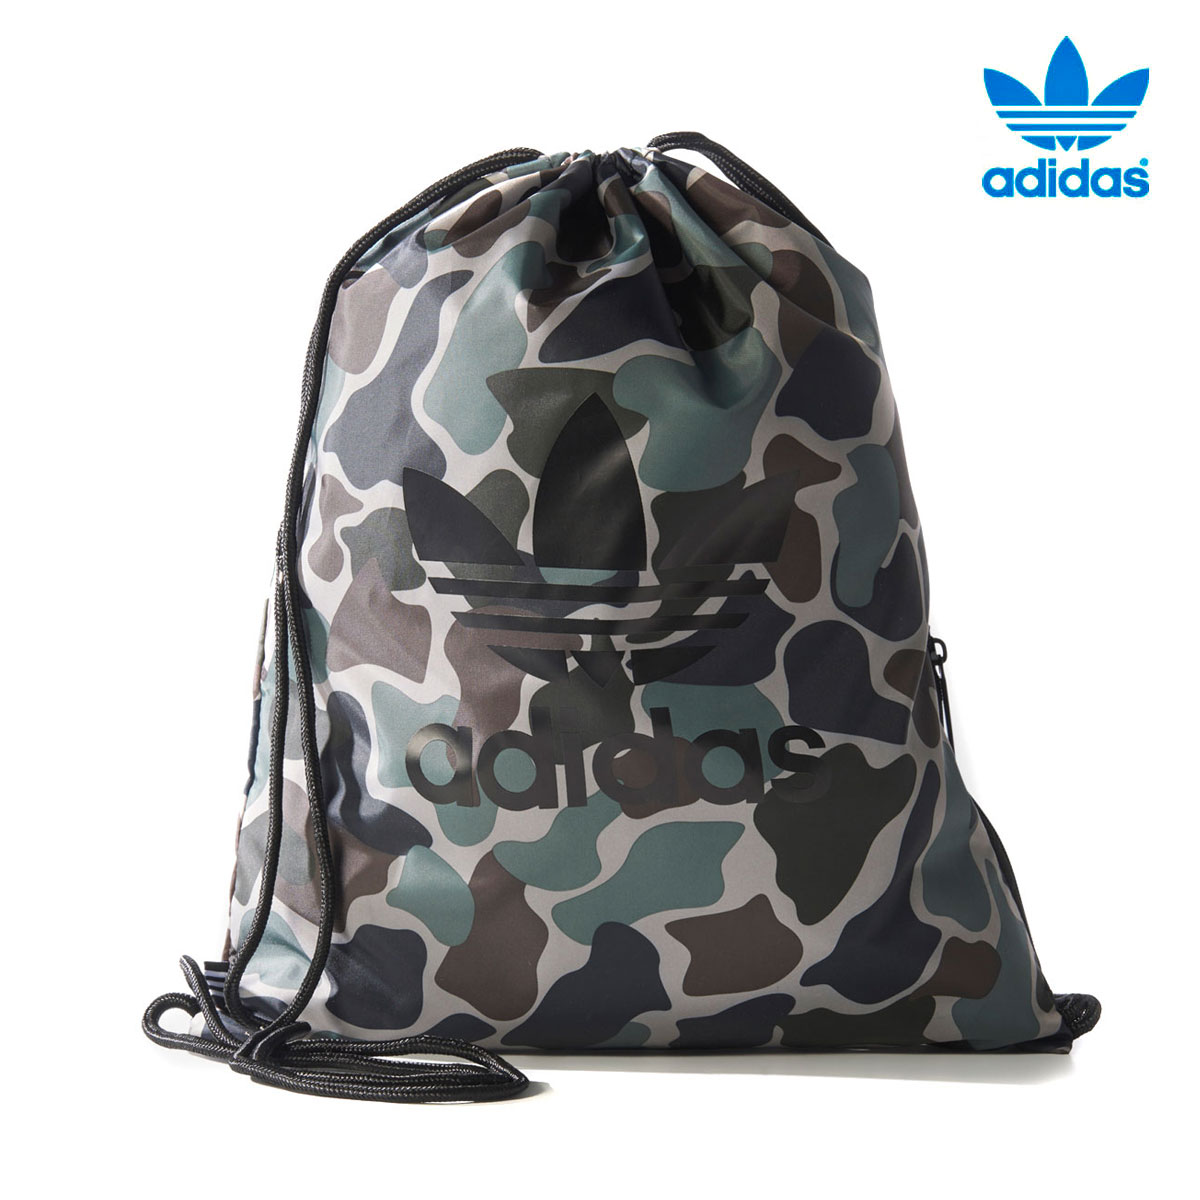 adidas Originals GYMSACK CAMO (Adidas originals gym case duck) MULTI COLOR  17FW-I